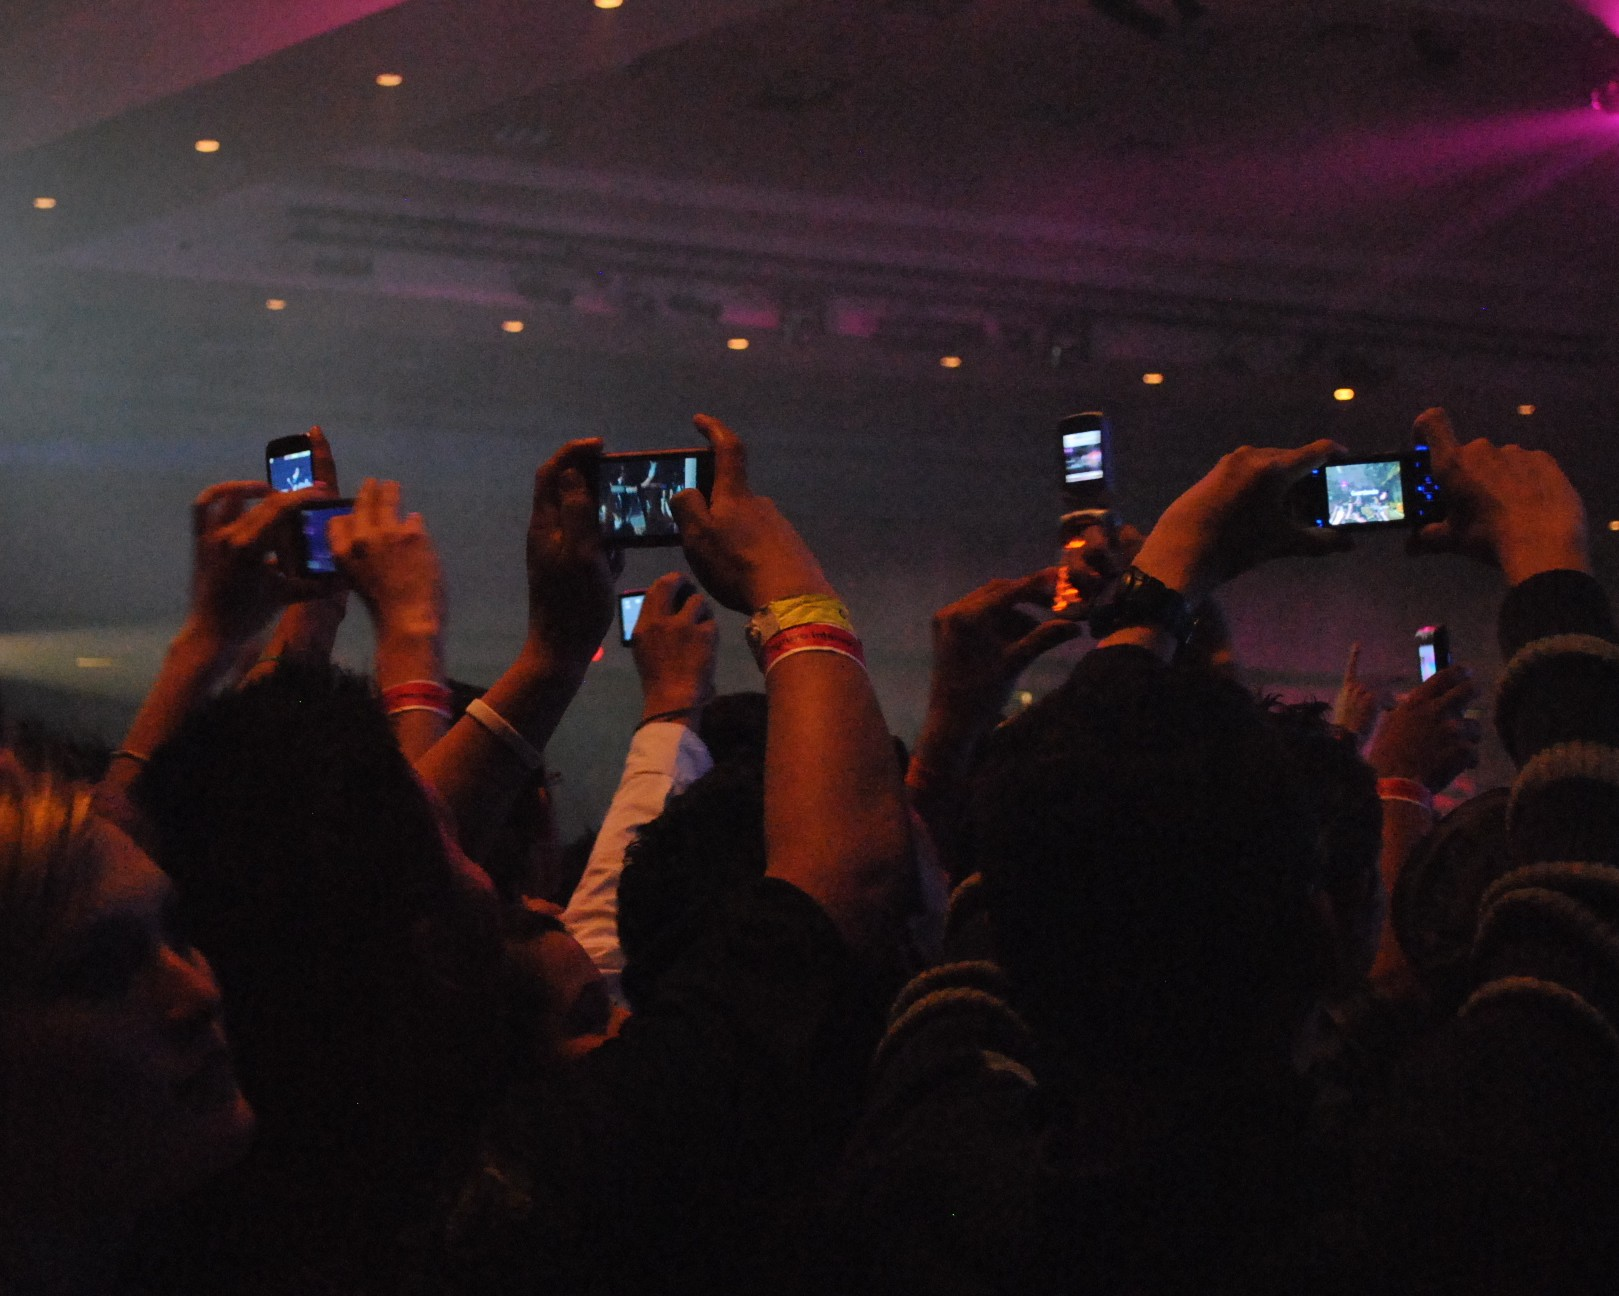 A Tech Expert Explains What Apple's Camera Blocking Patent Means for Concertgoers